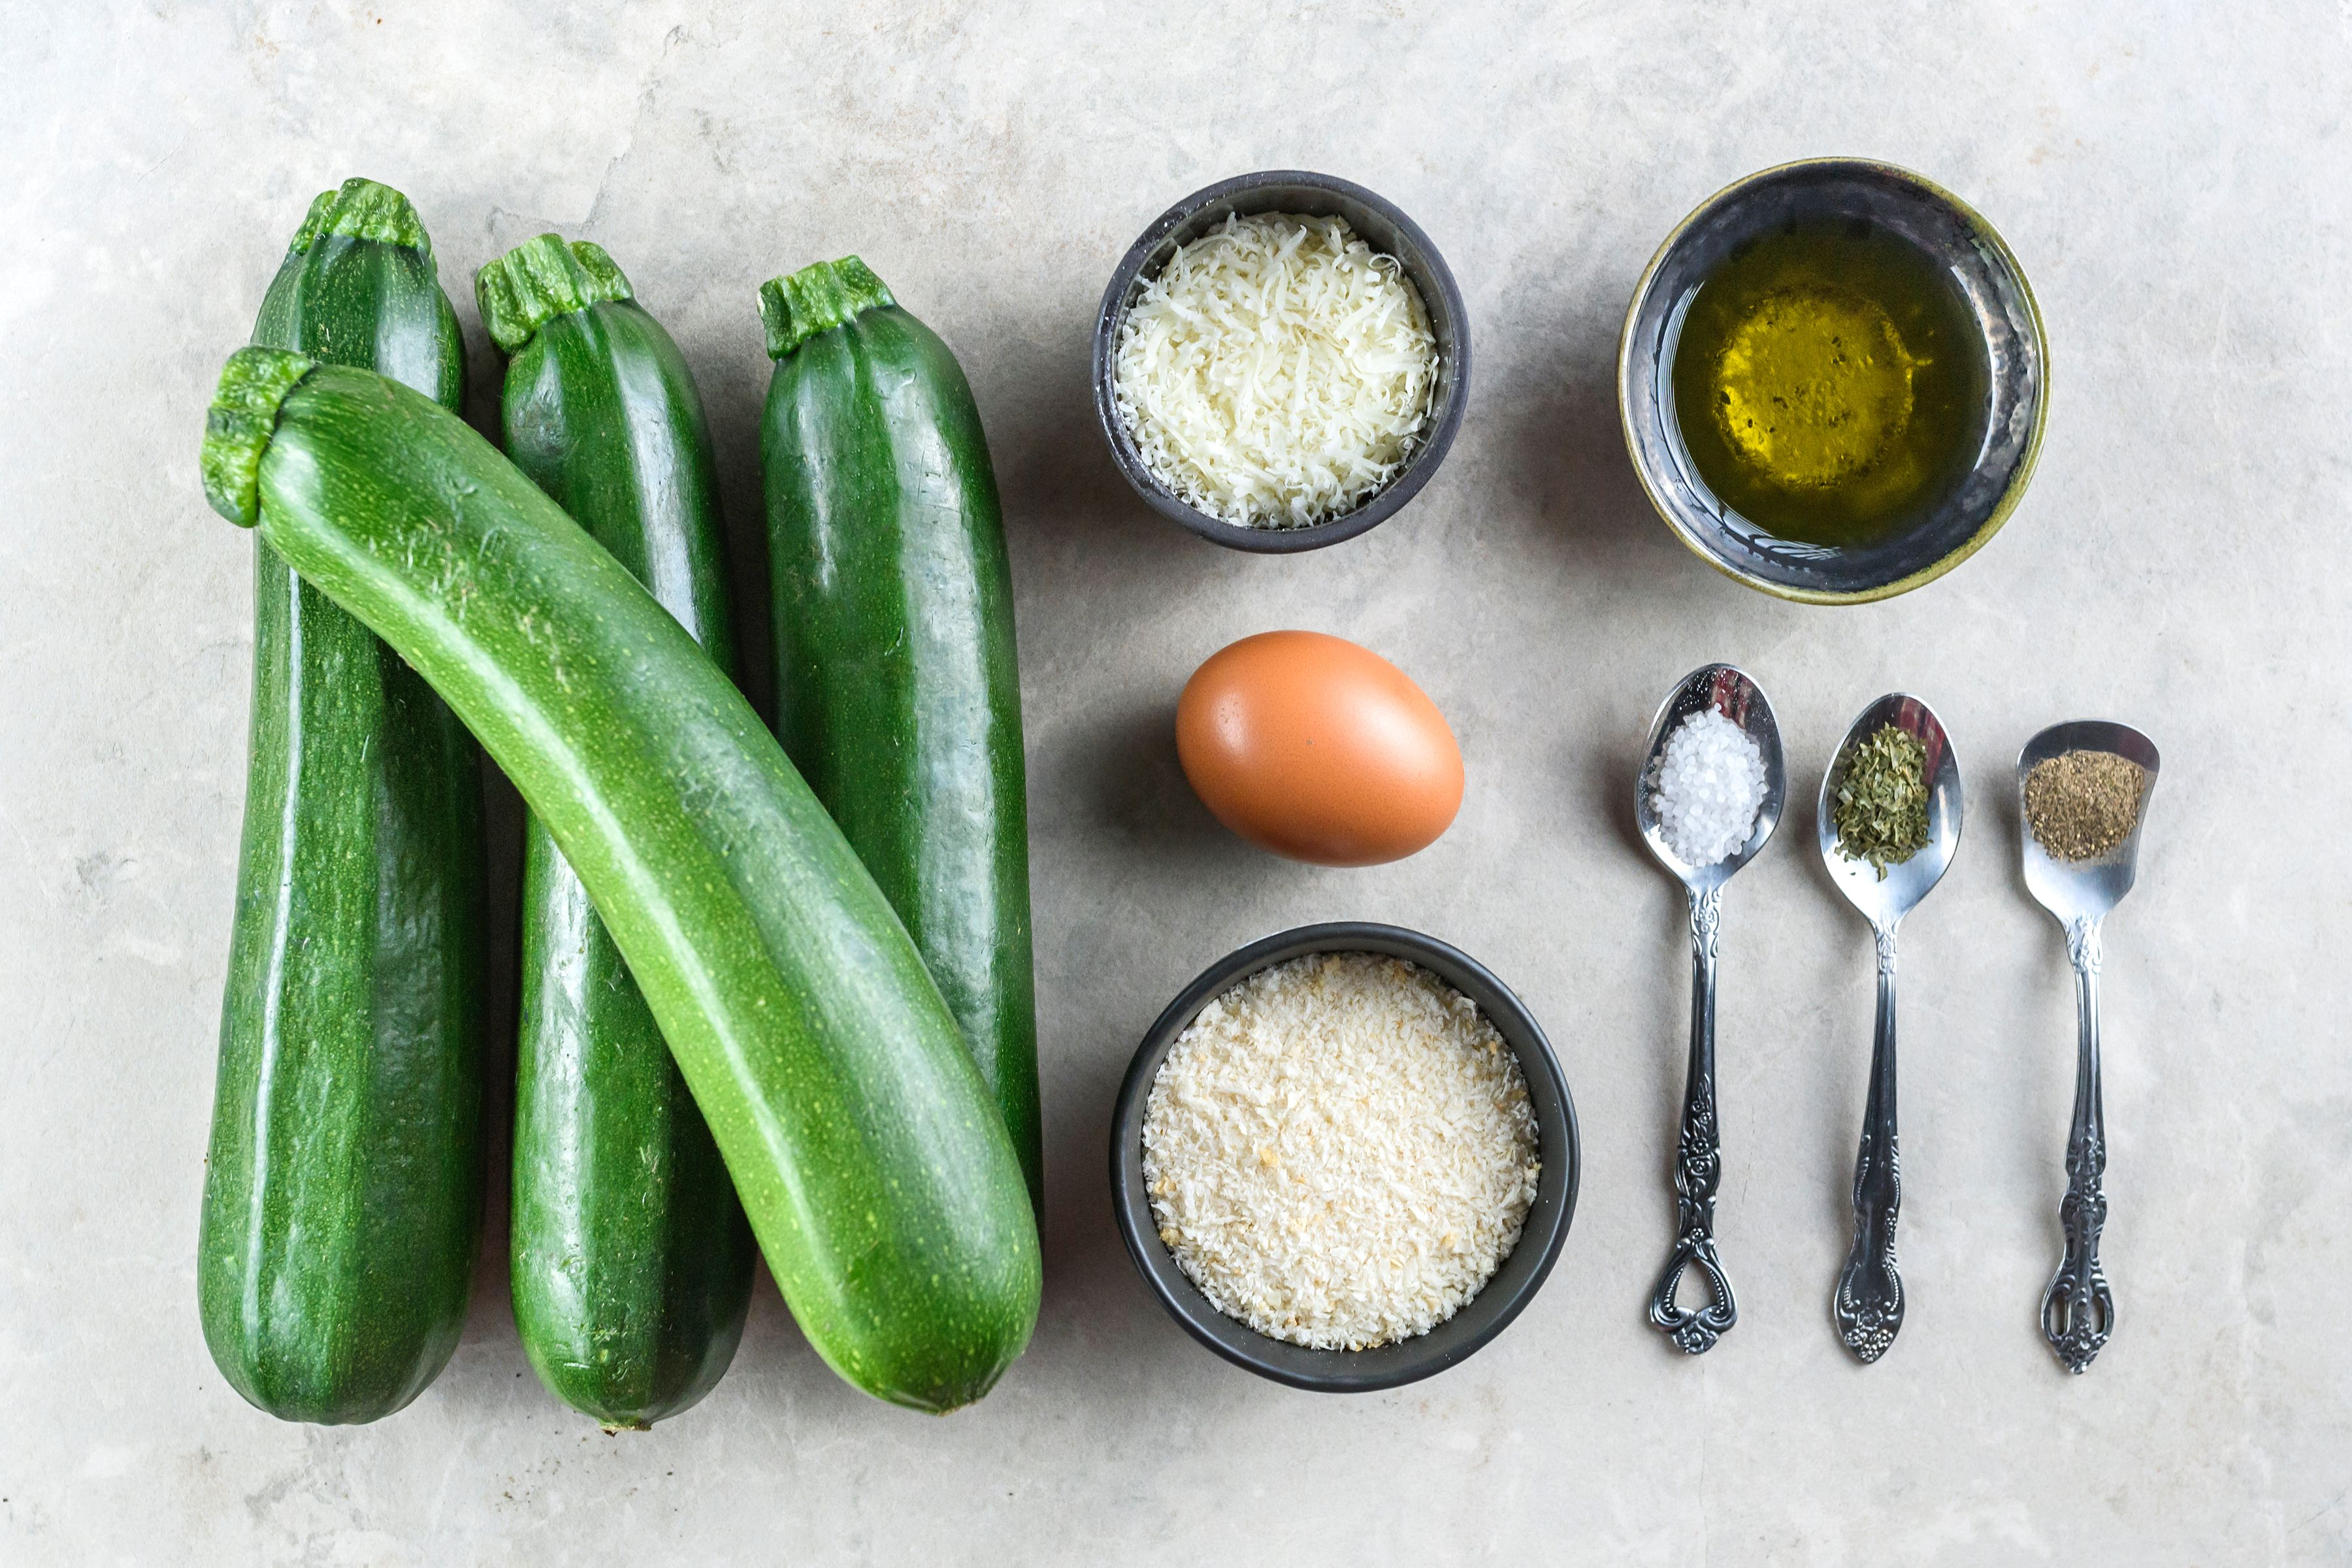 Ingredients for oven fried zucchini